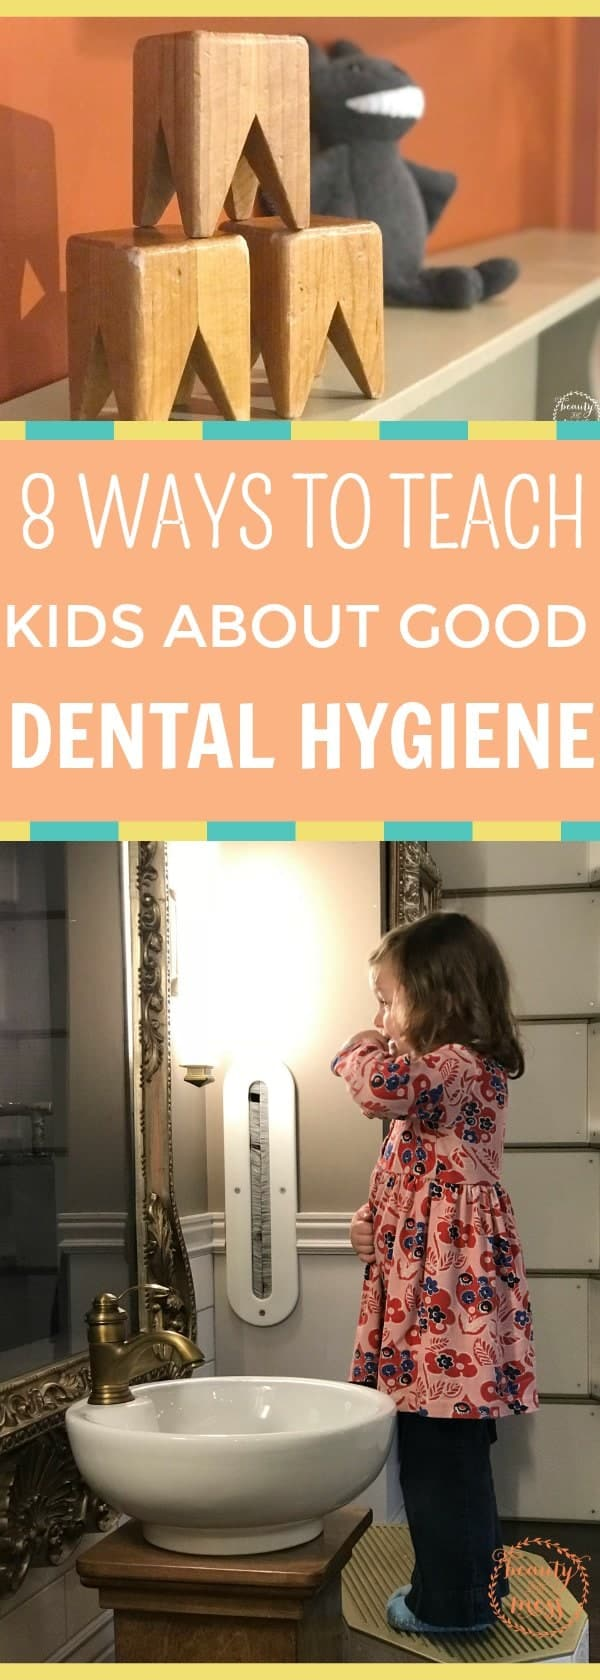 We know dental hygiene is important, but how do we teach our kids about good oral health when we can't get them to brush their teeth? Don't miss these 8 tips.